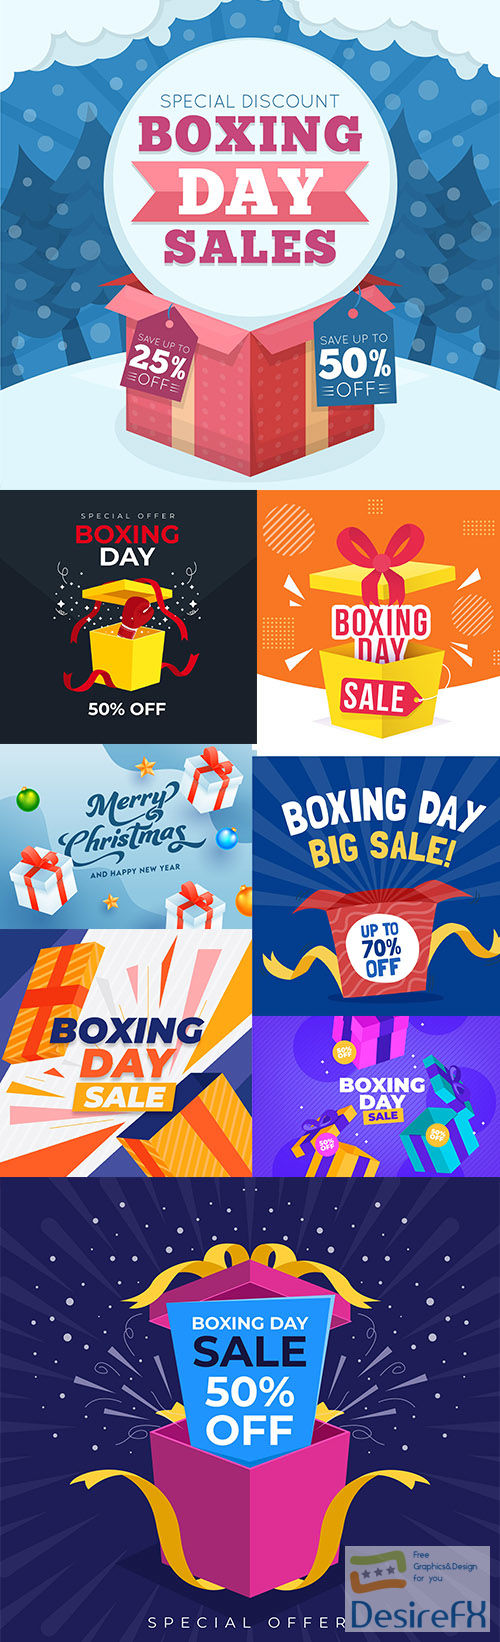 Design Boxing day sale